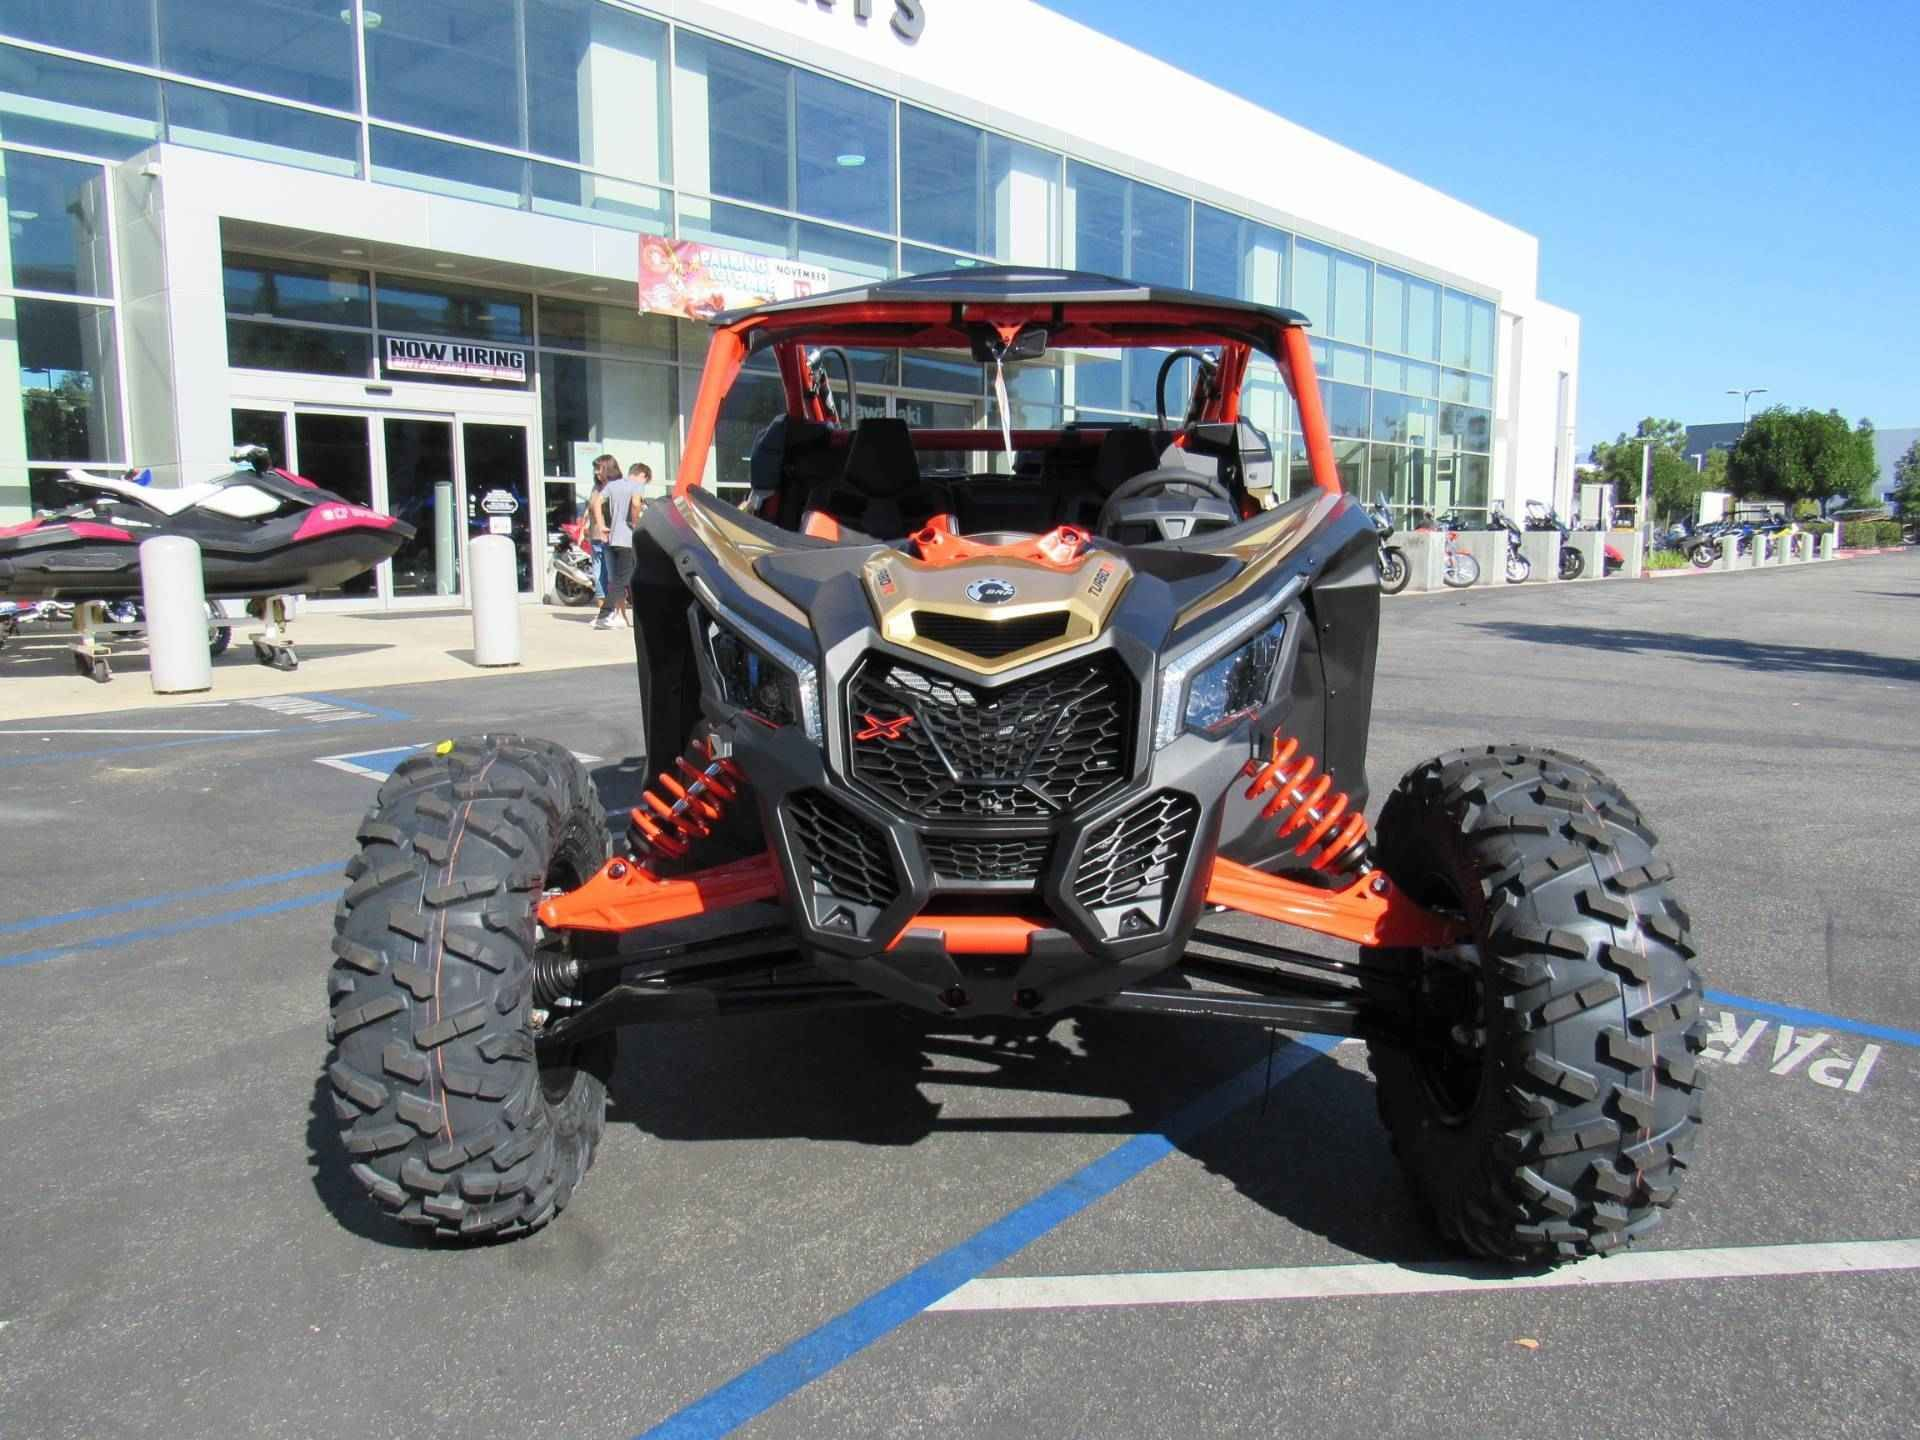 New 2017 Can Am Mavericka X3 X Rs Turbo R Atvs For Sale In California This Is The World S First Factory 72 In Wide Side By Side Vehicle Wi In 2020 Can Am Turbo Atv